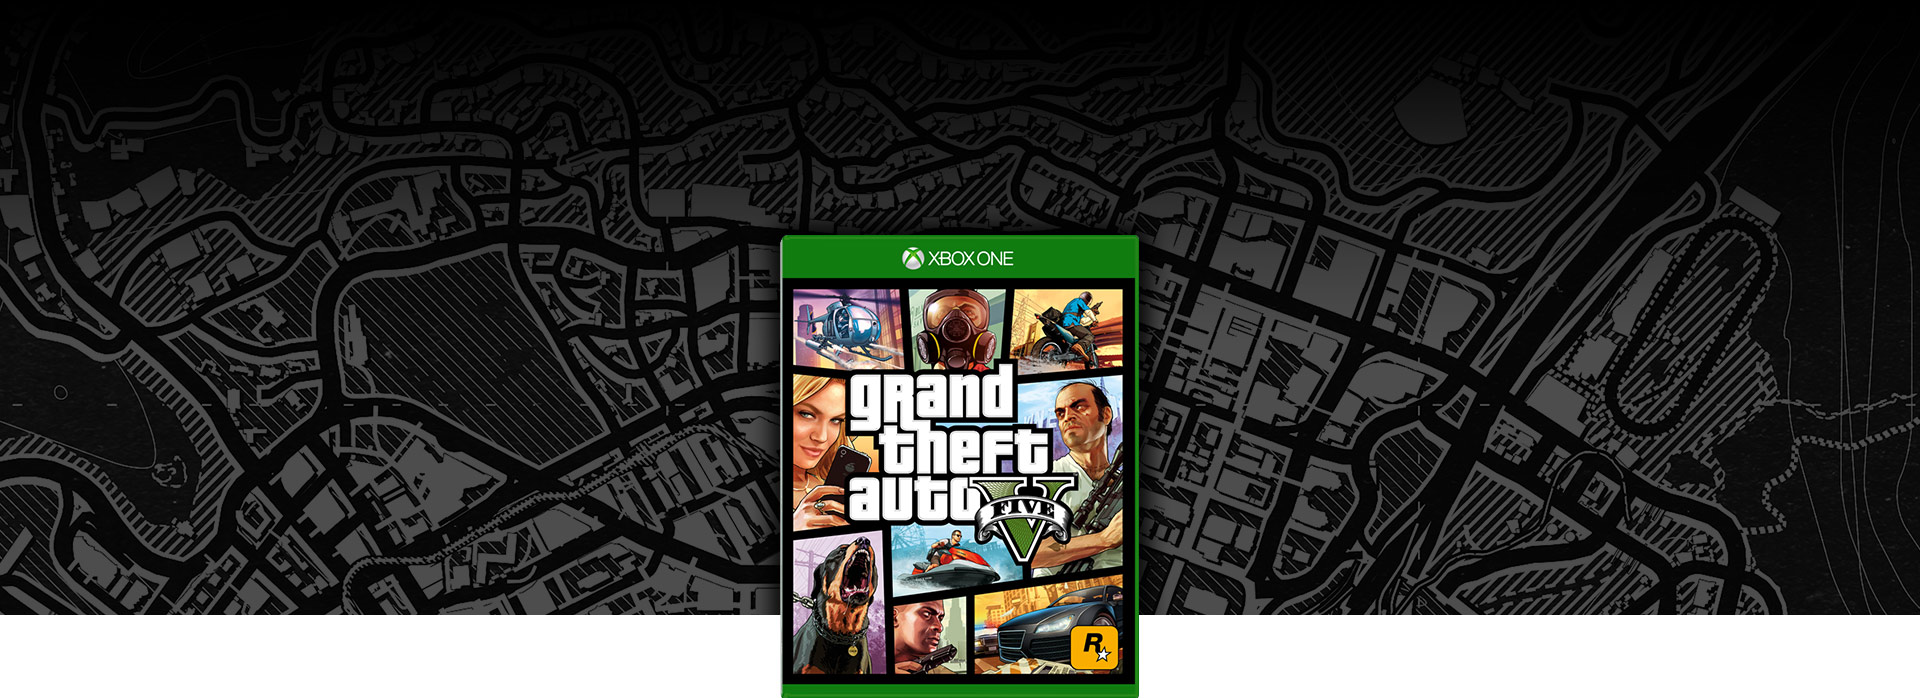 gta shark cards prices xbox one